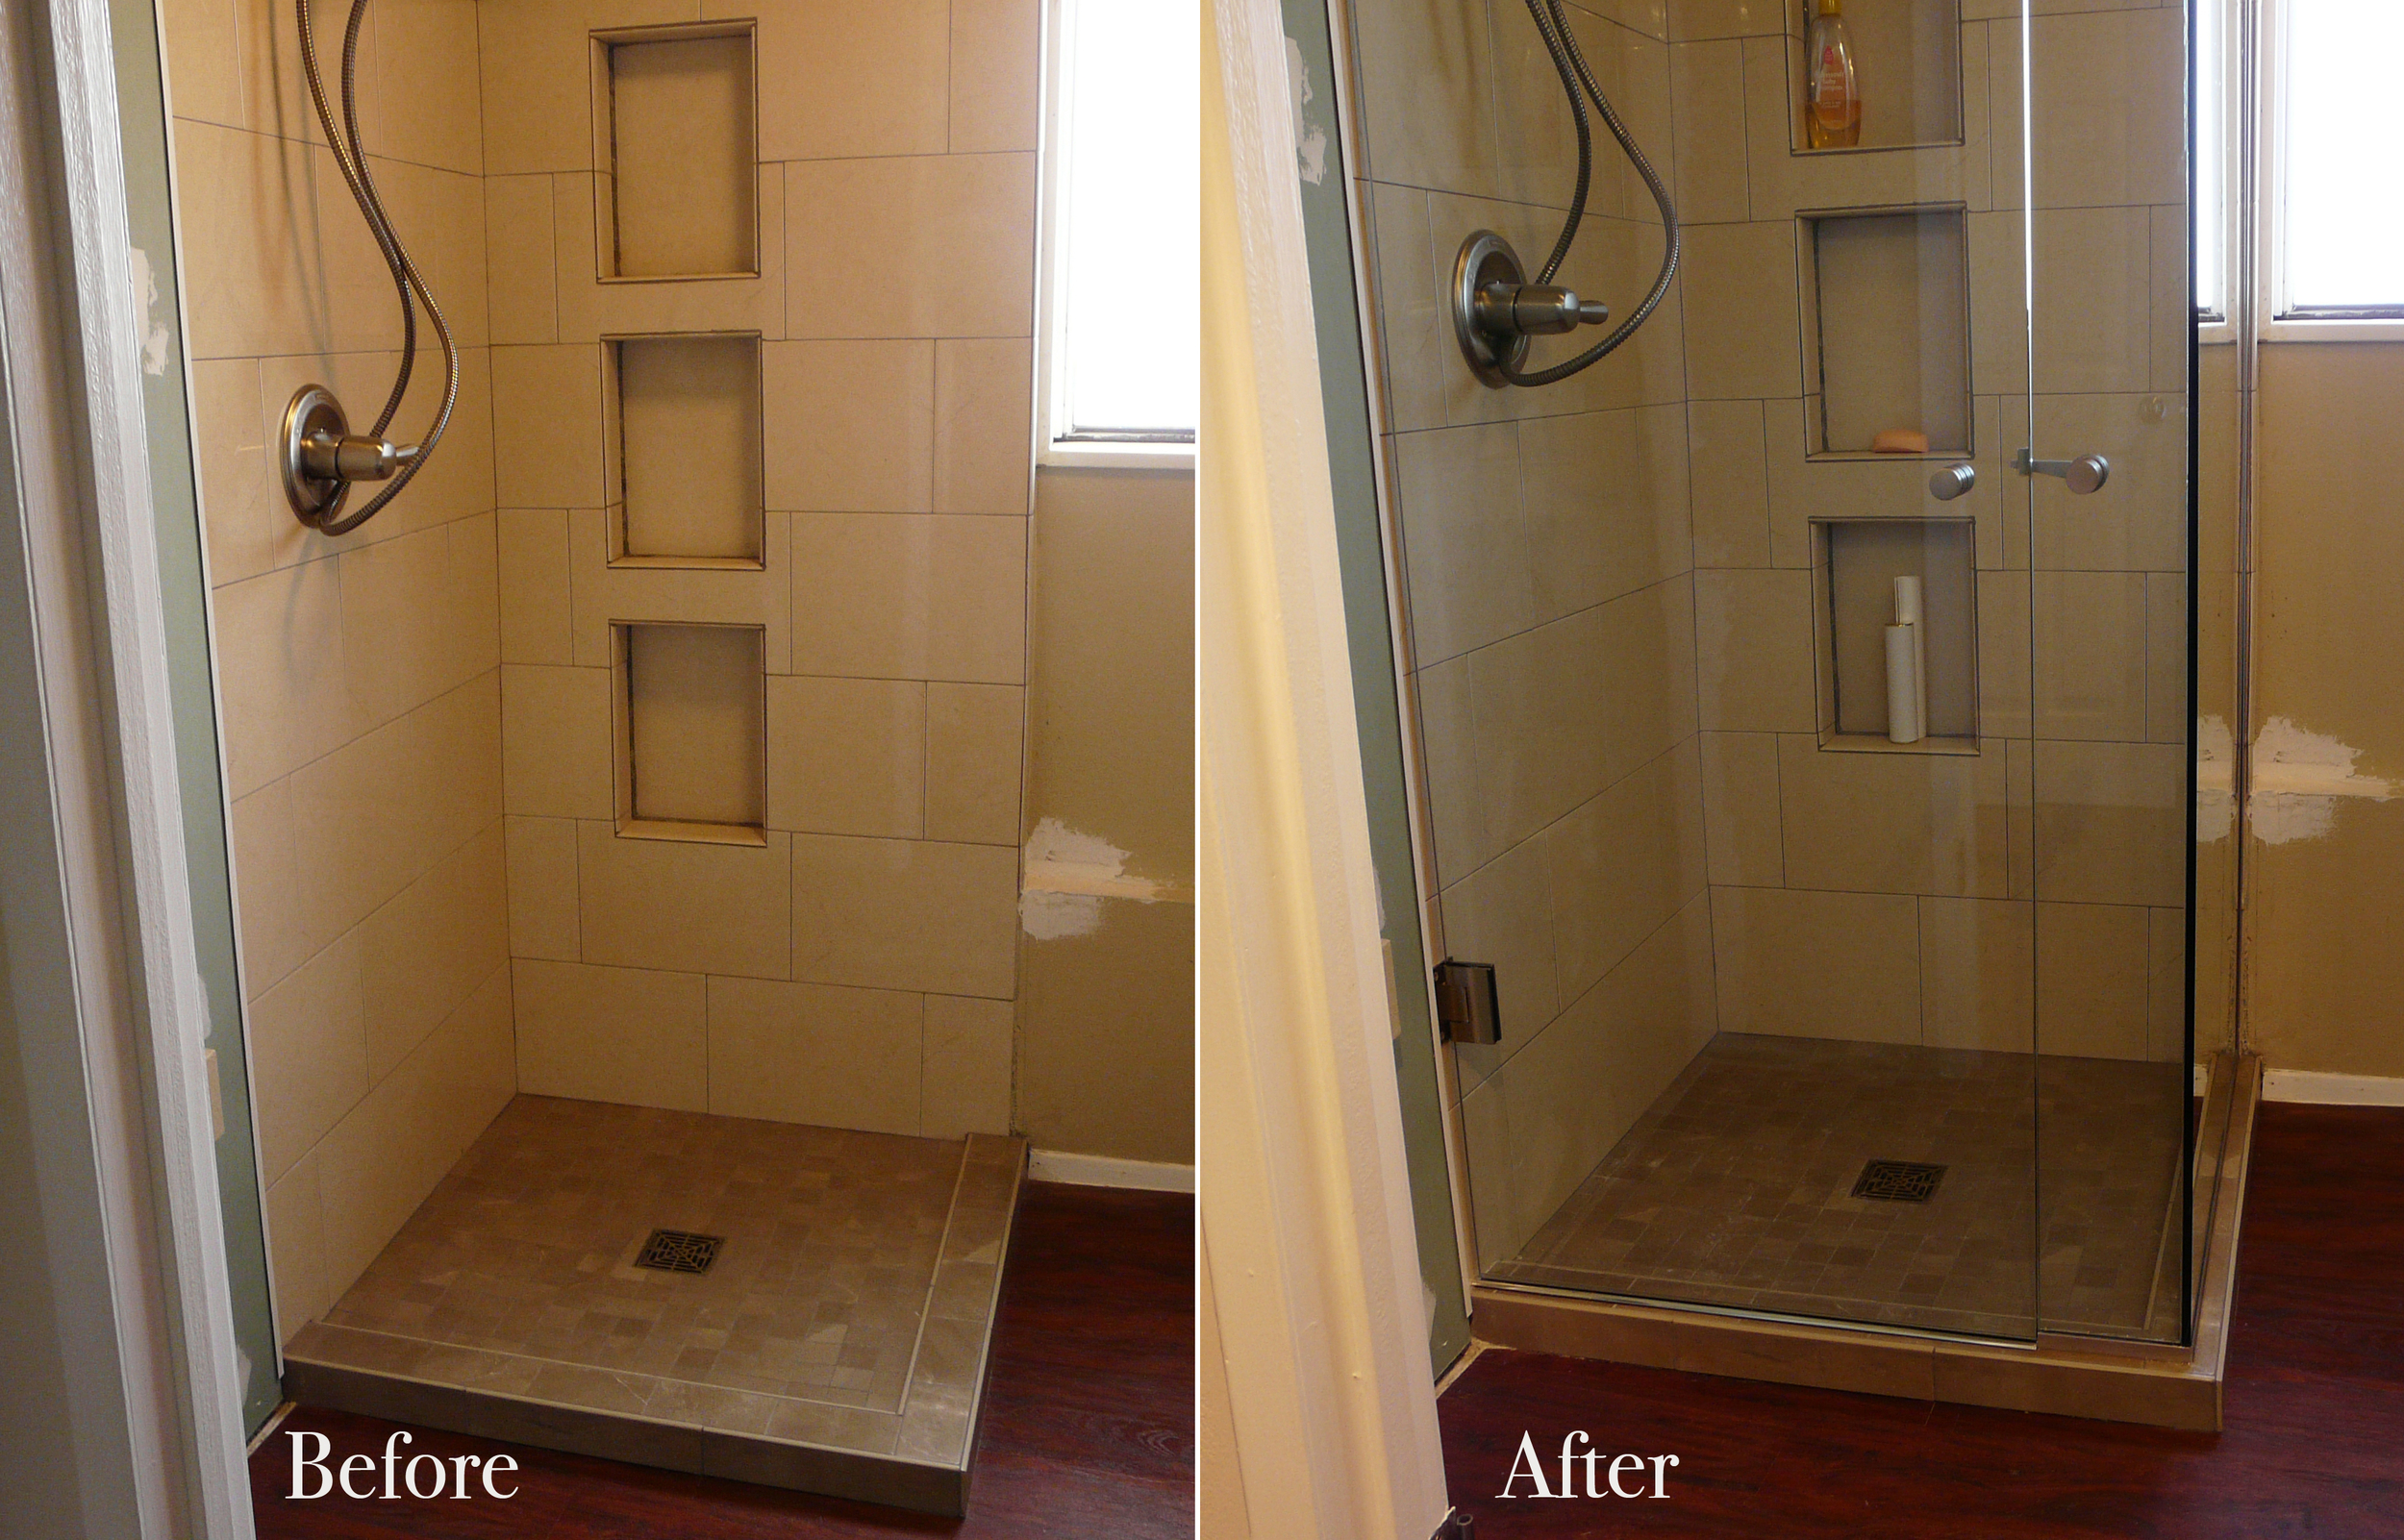 shower door replacement before and after.jpg